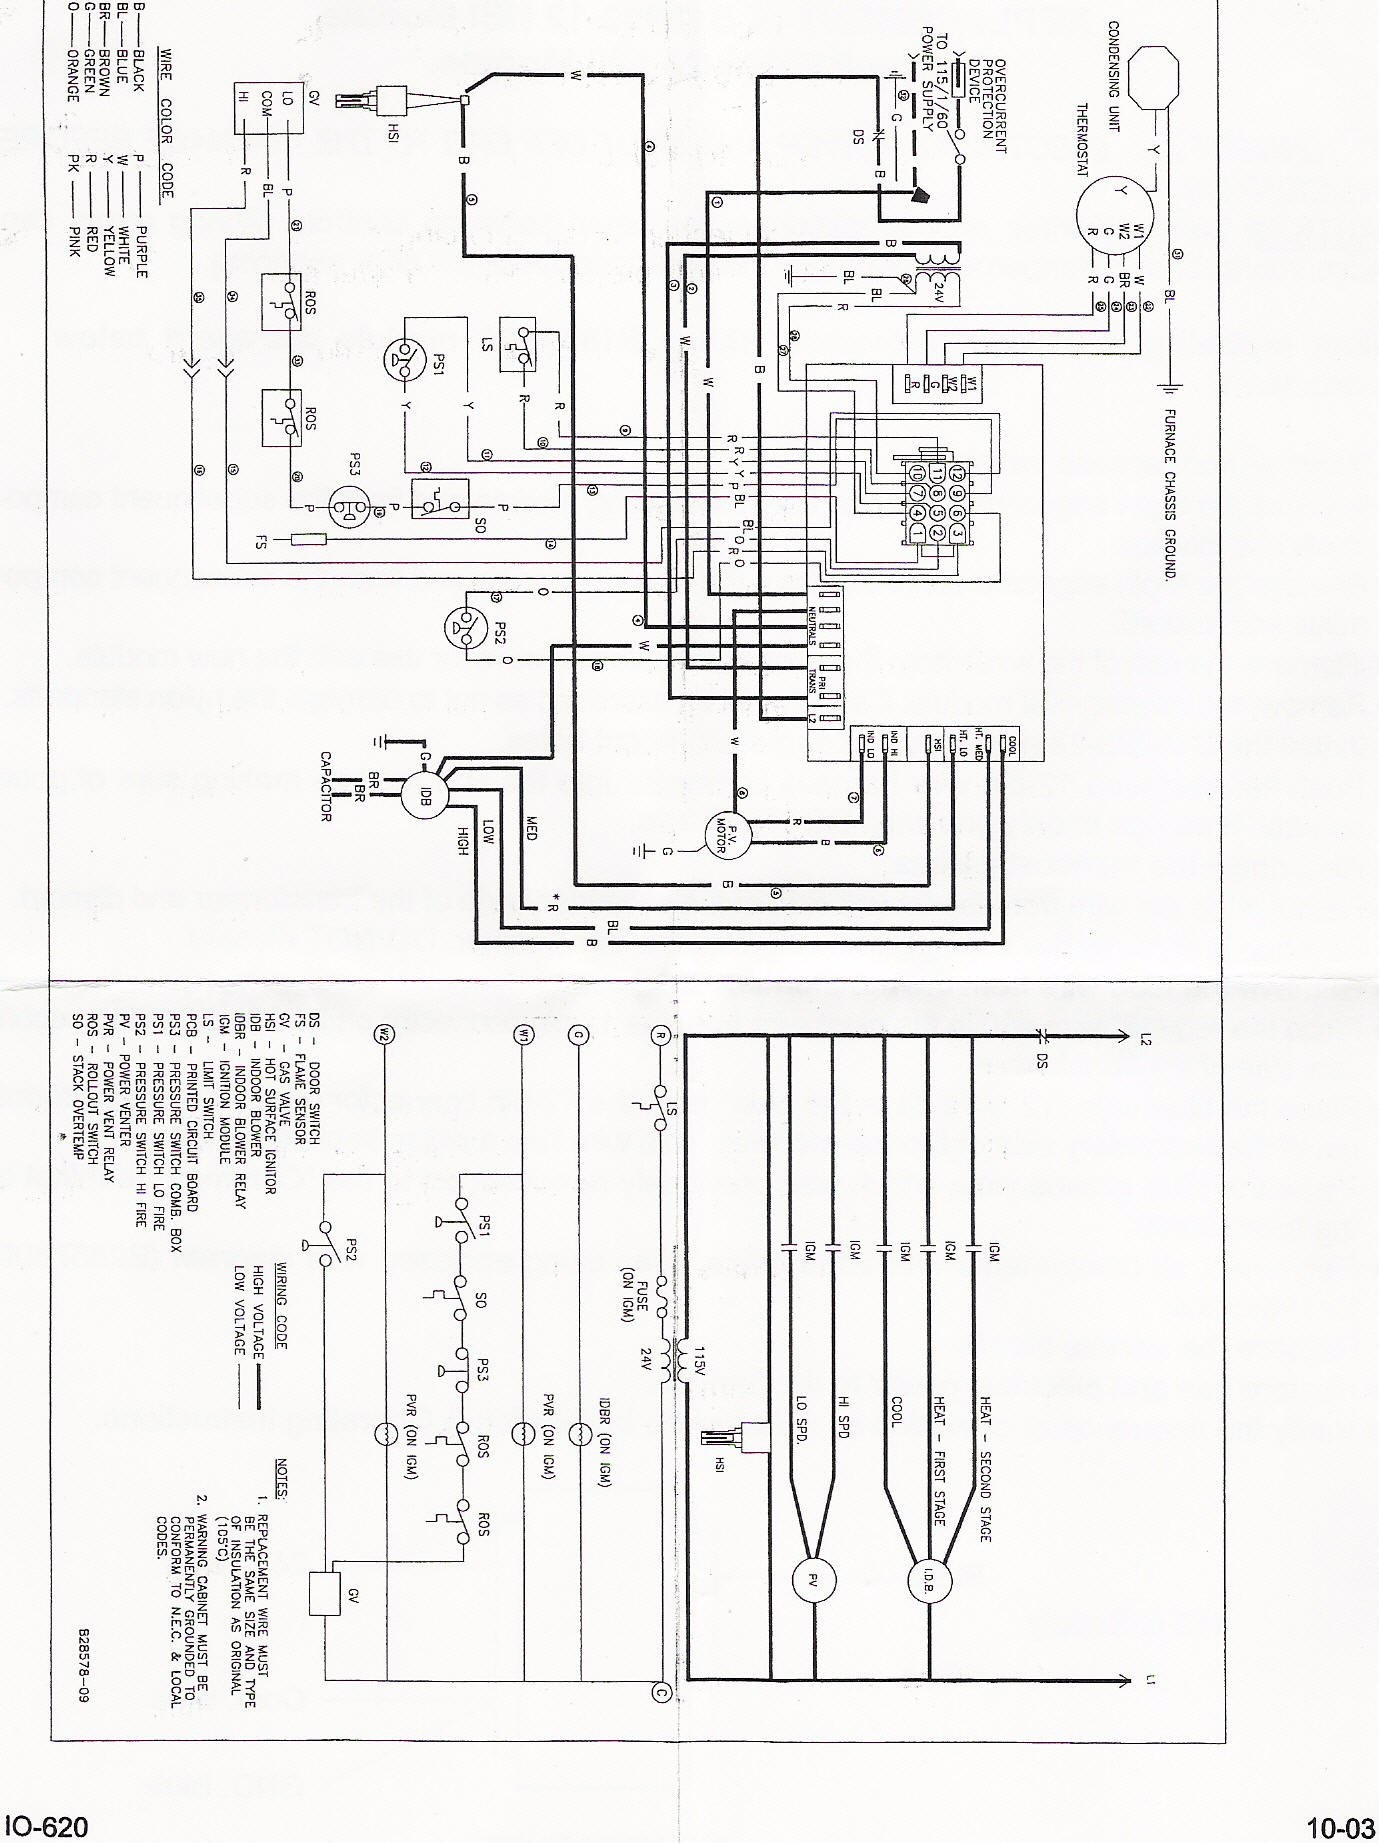 goodman defrost board wiring diagram | free wiring diagram defrost board wiring diagram